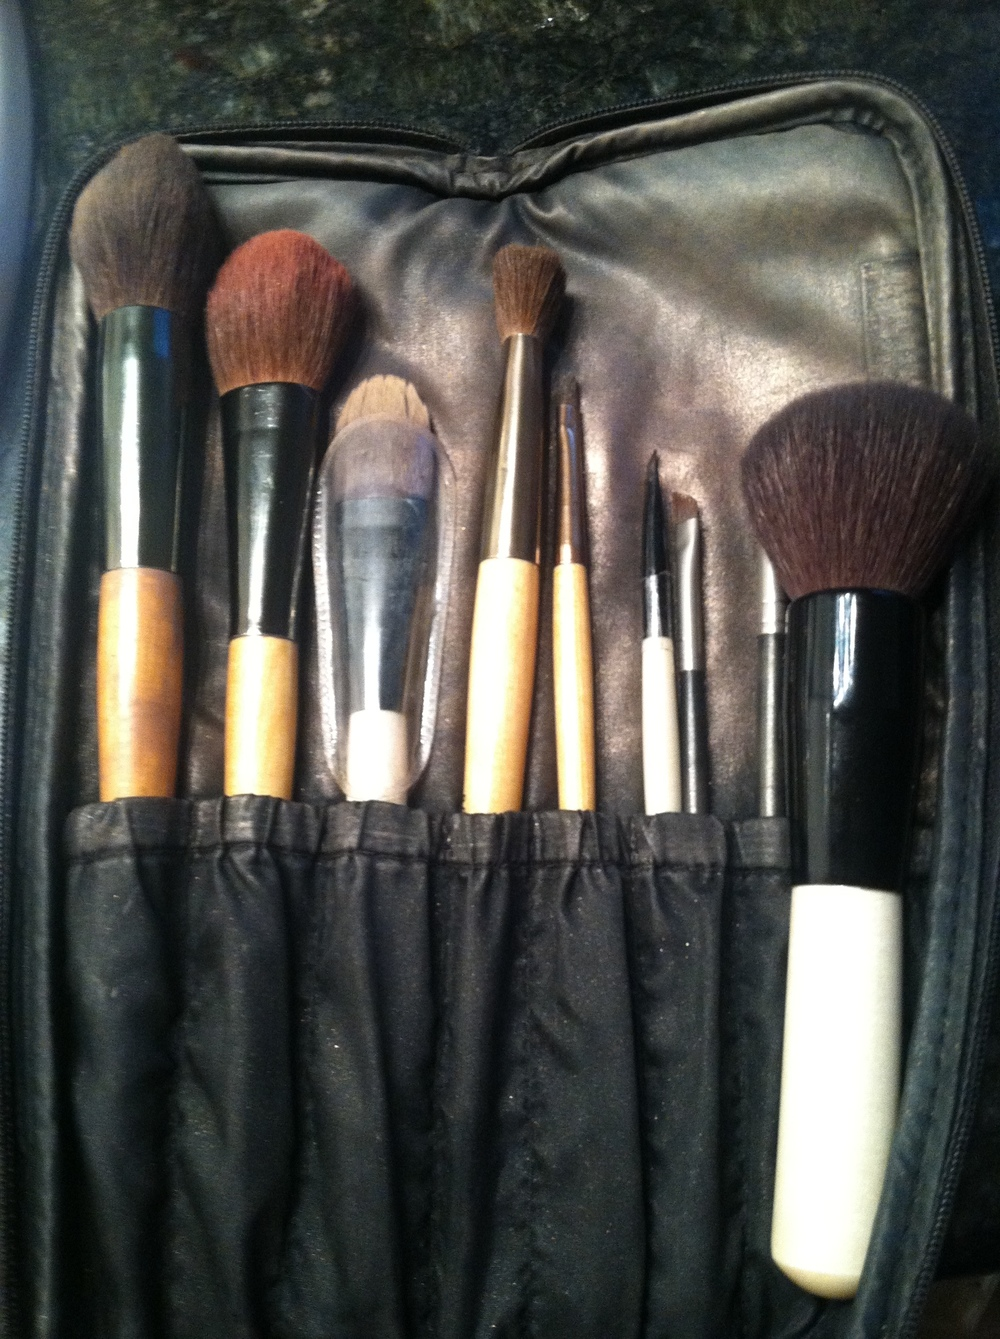 My Bobbi Brown Brush collection.